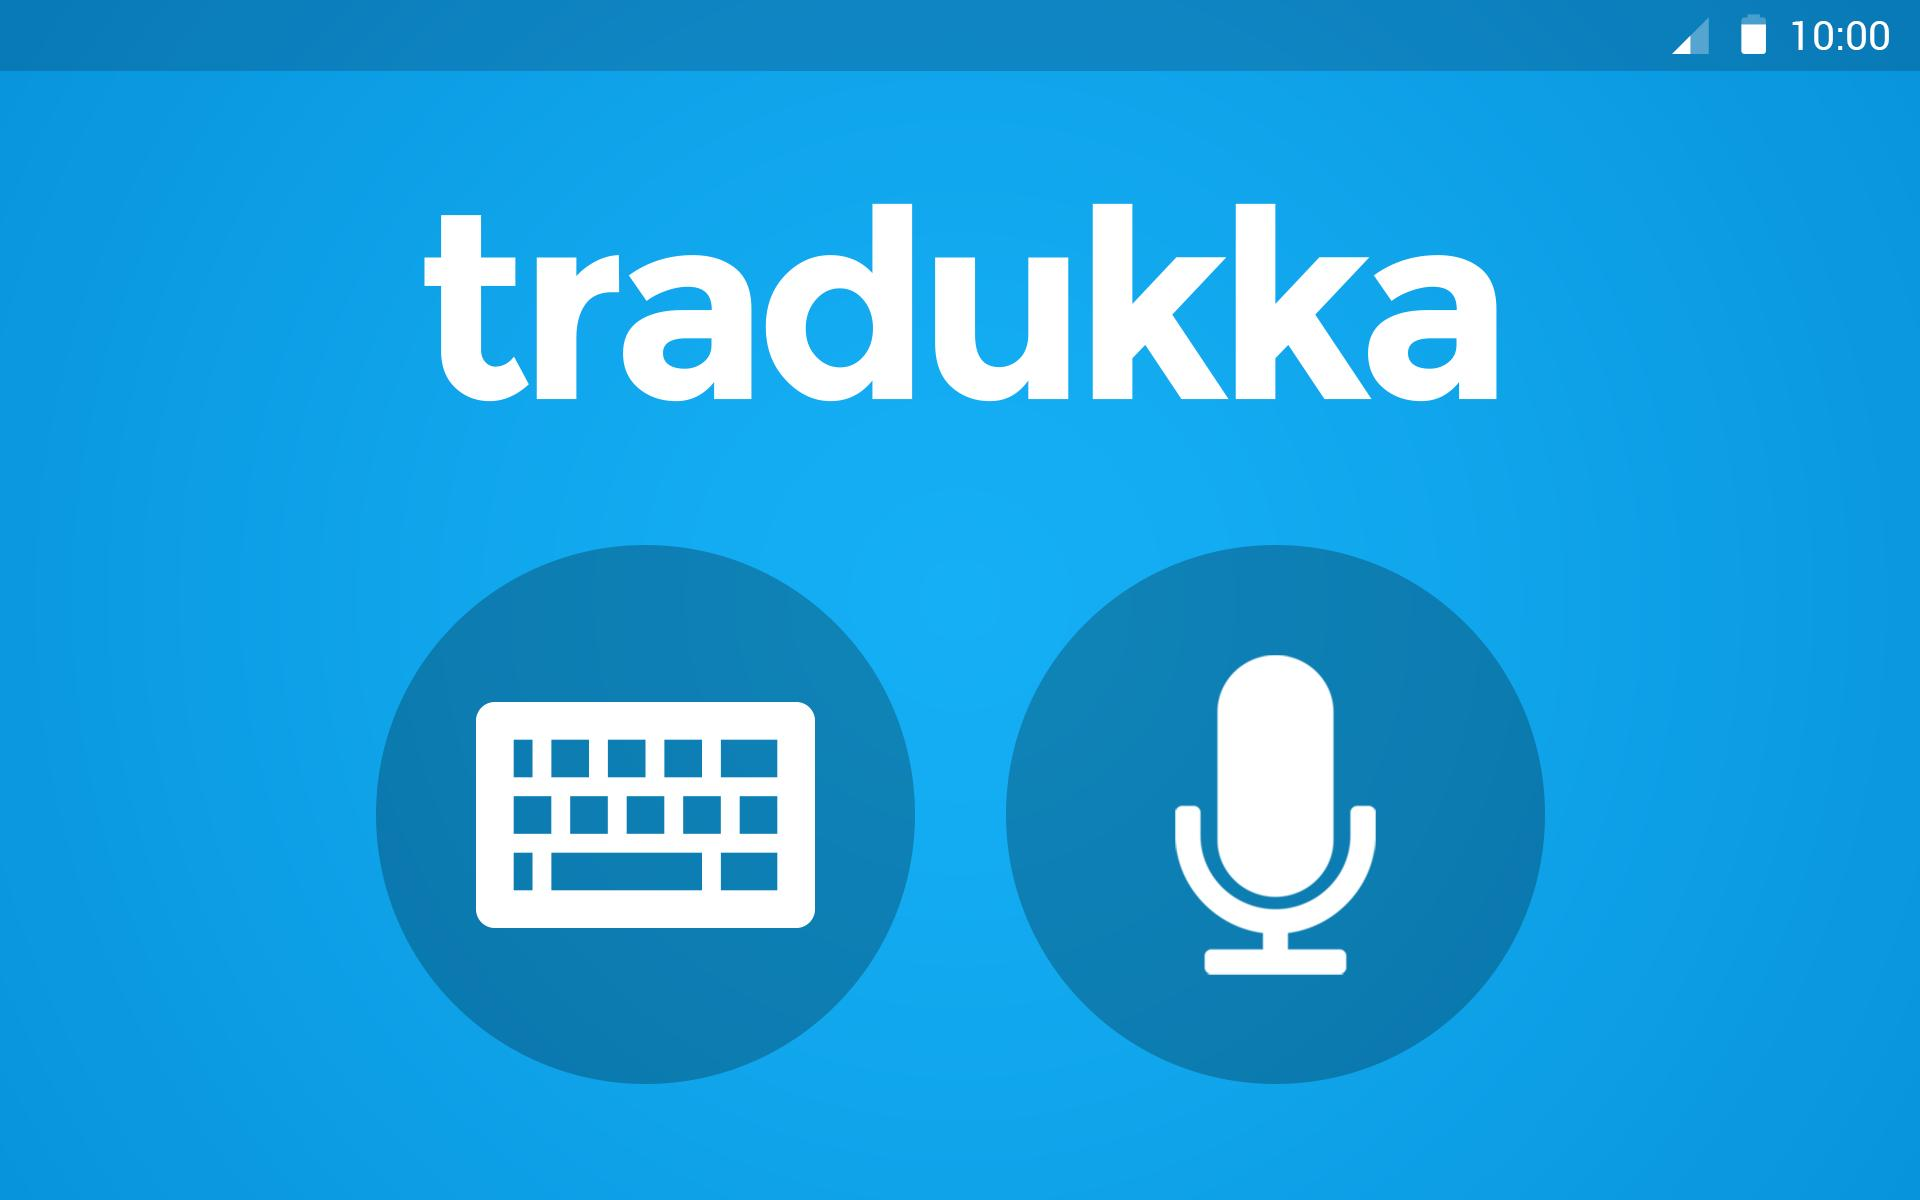 Tradukka For Android Apk Download Translation is the process of transferring information from one language to another while trying to preserve as much information as possible. tradukka for android apk download